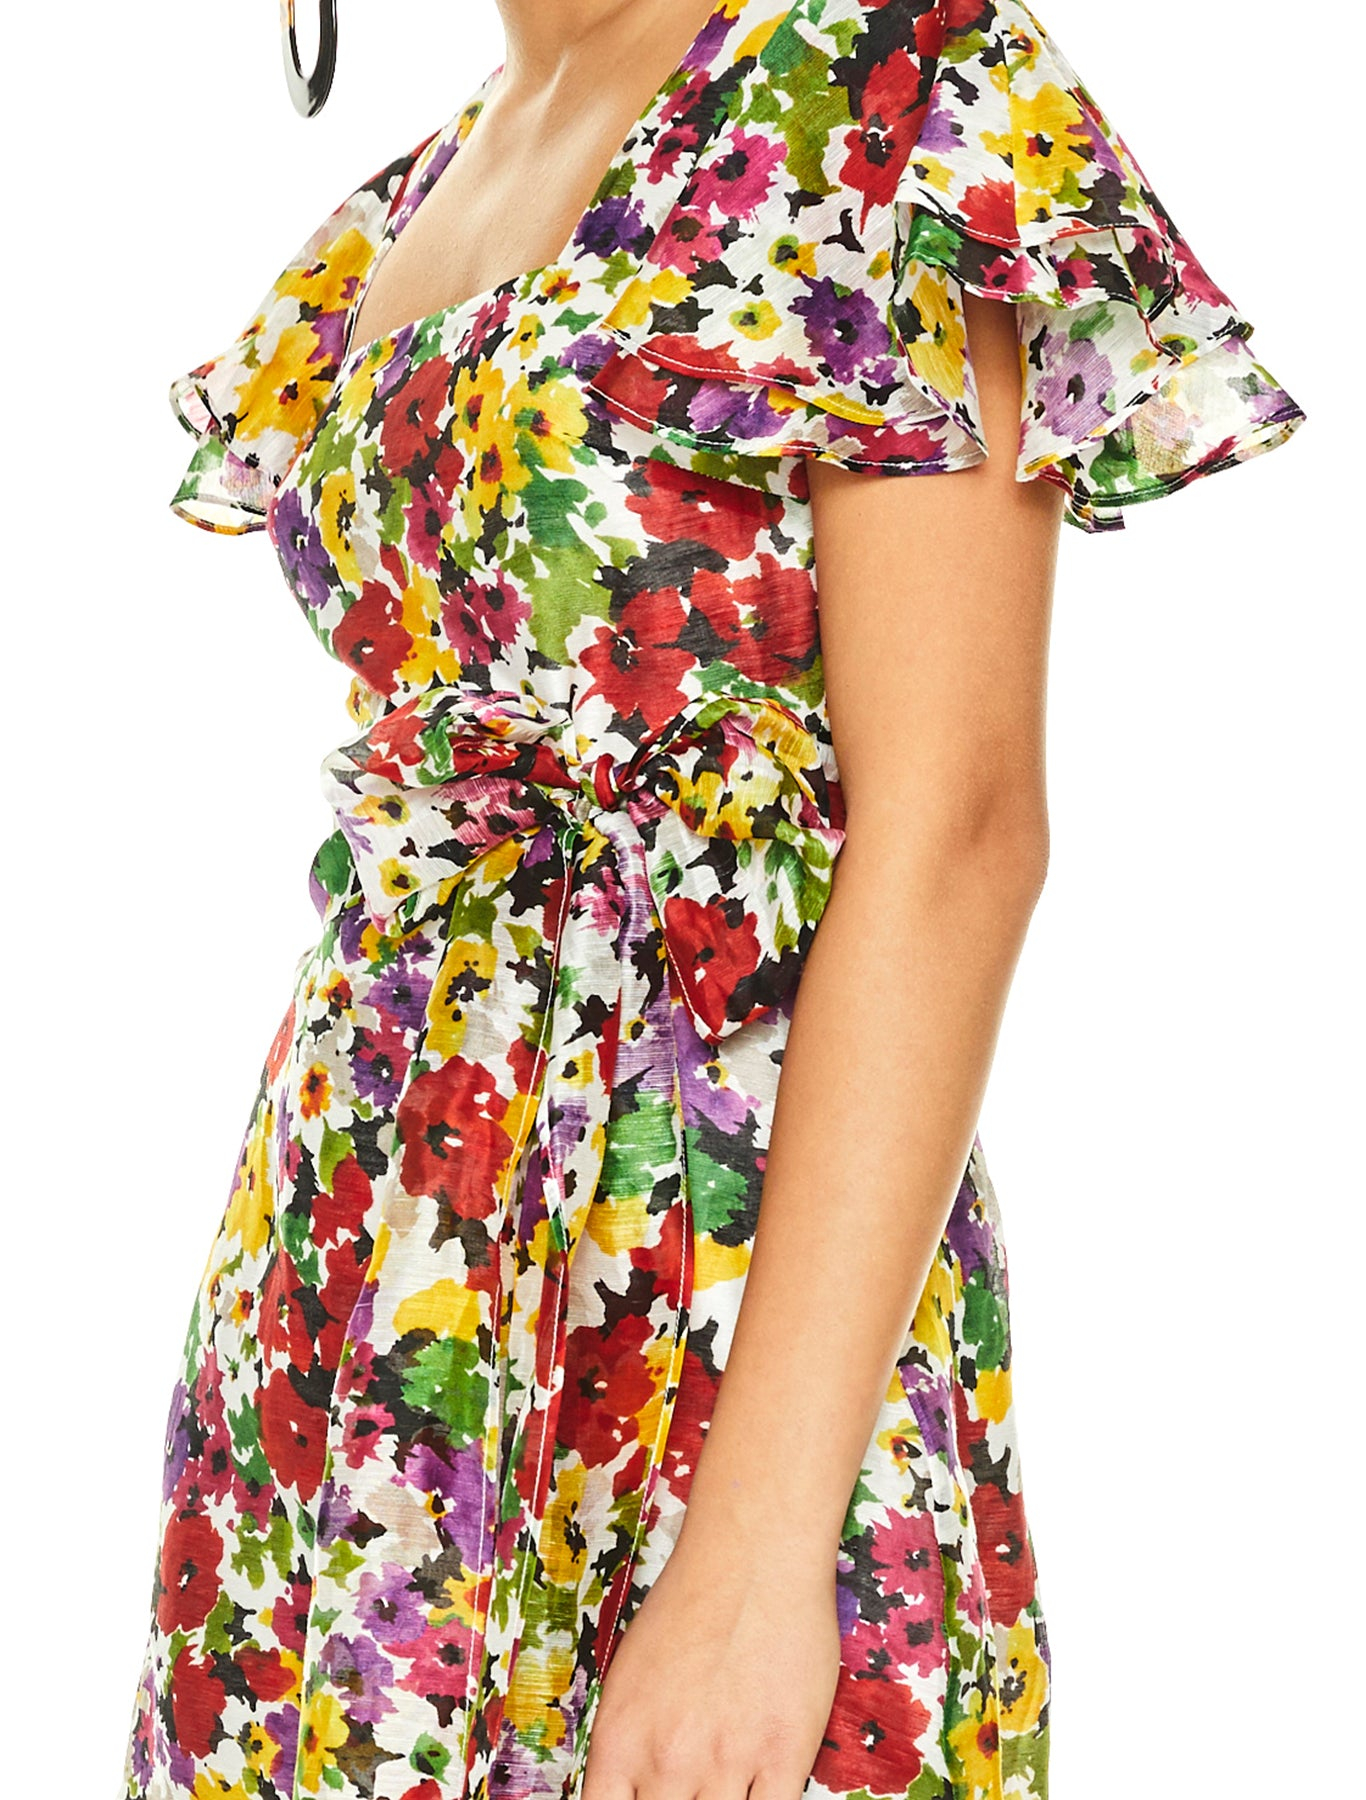 THE BLOSSOM MINI DRESS